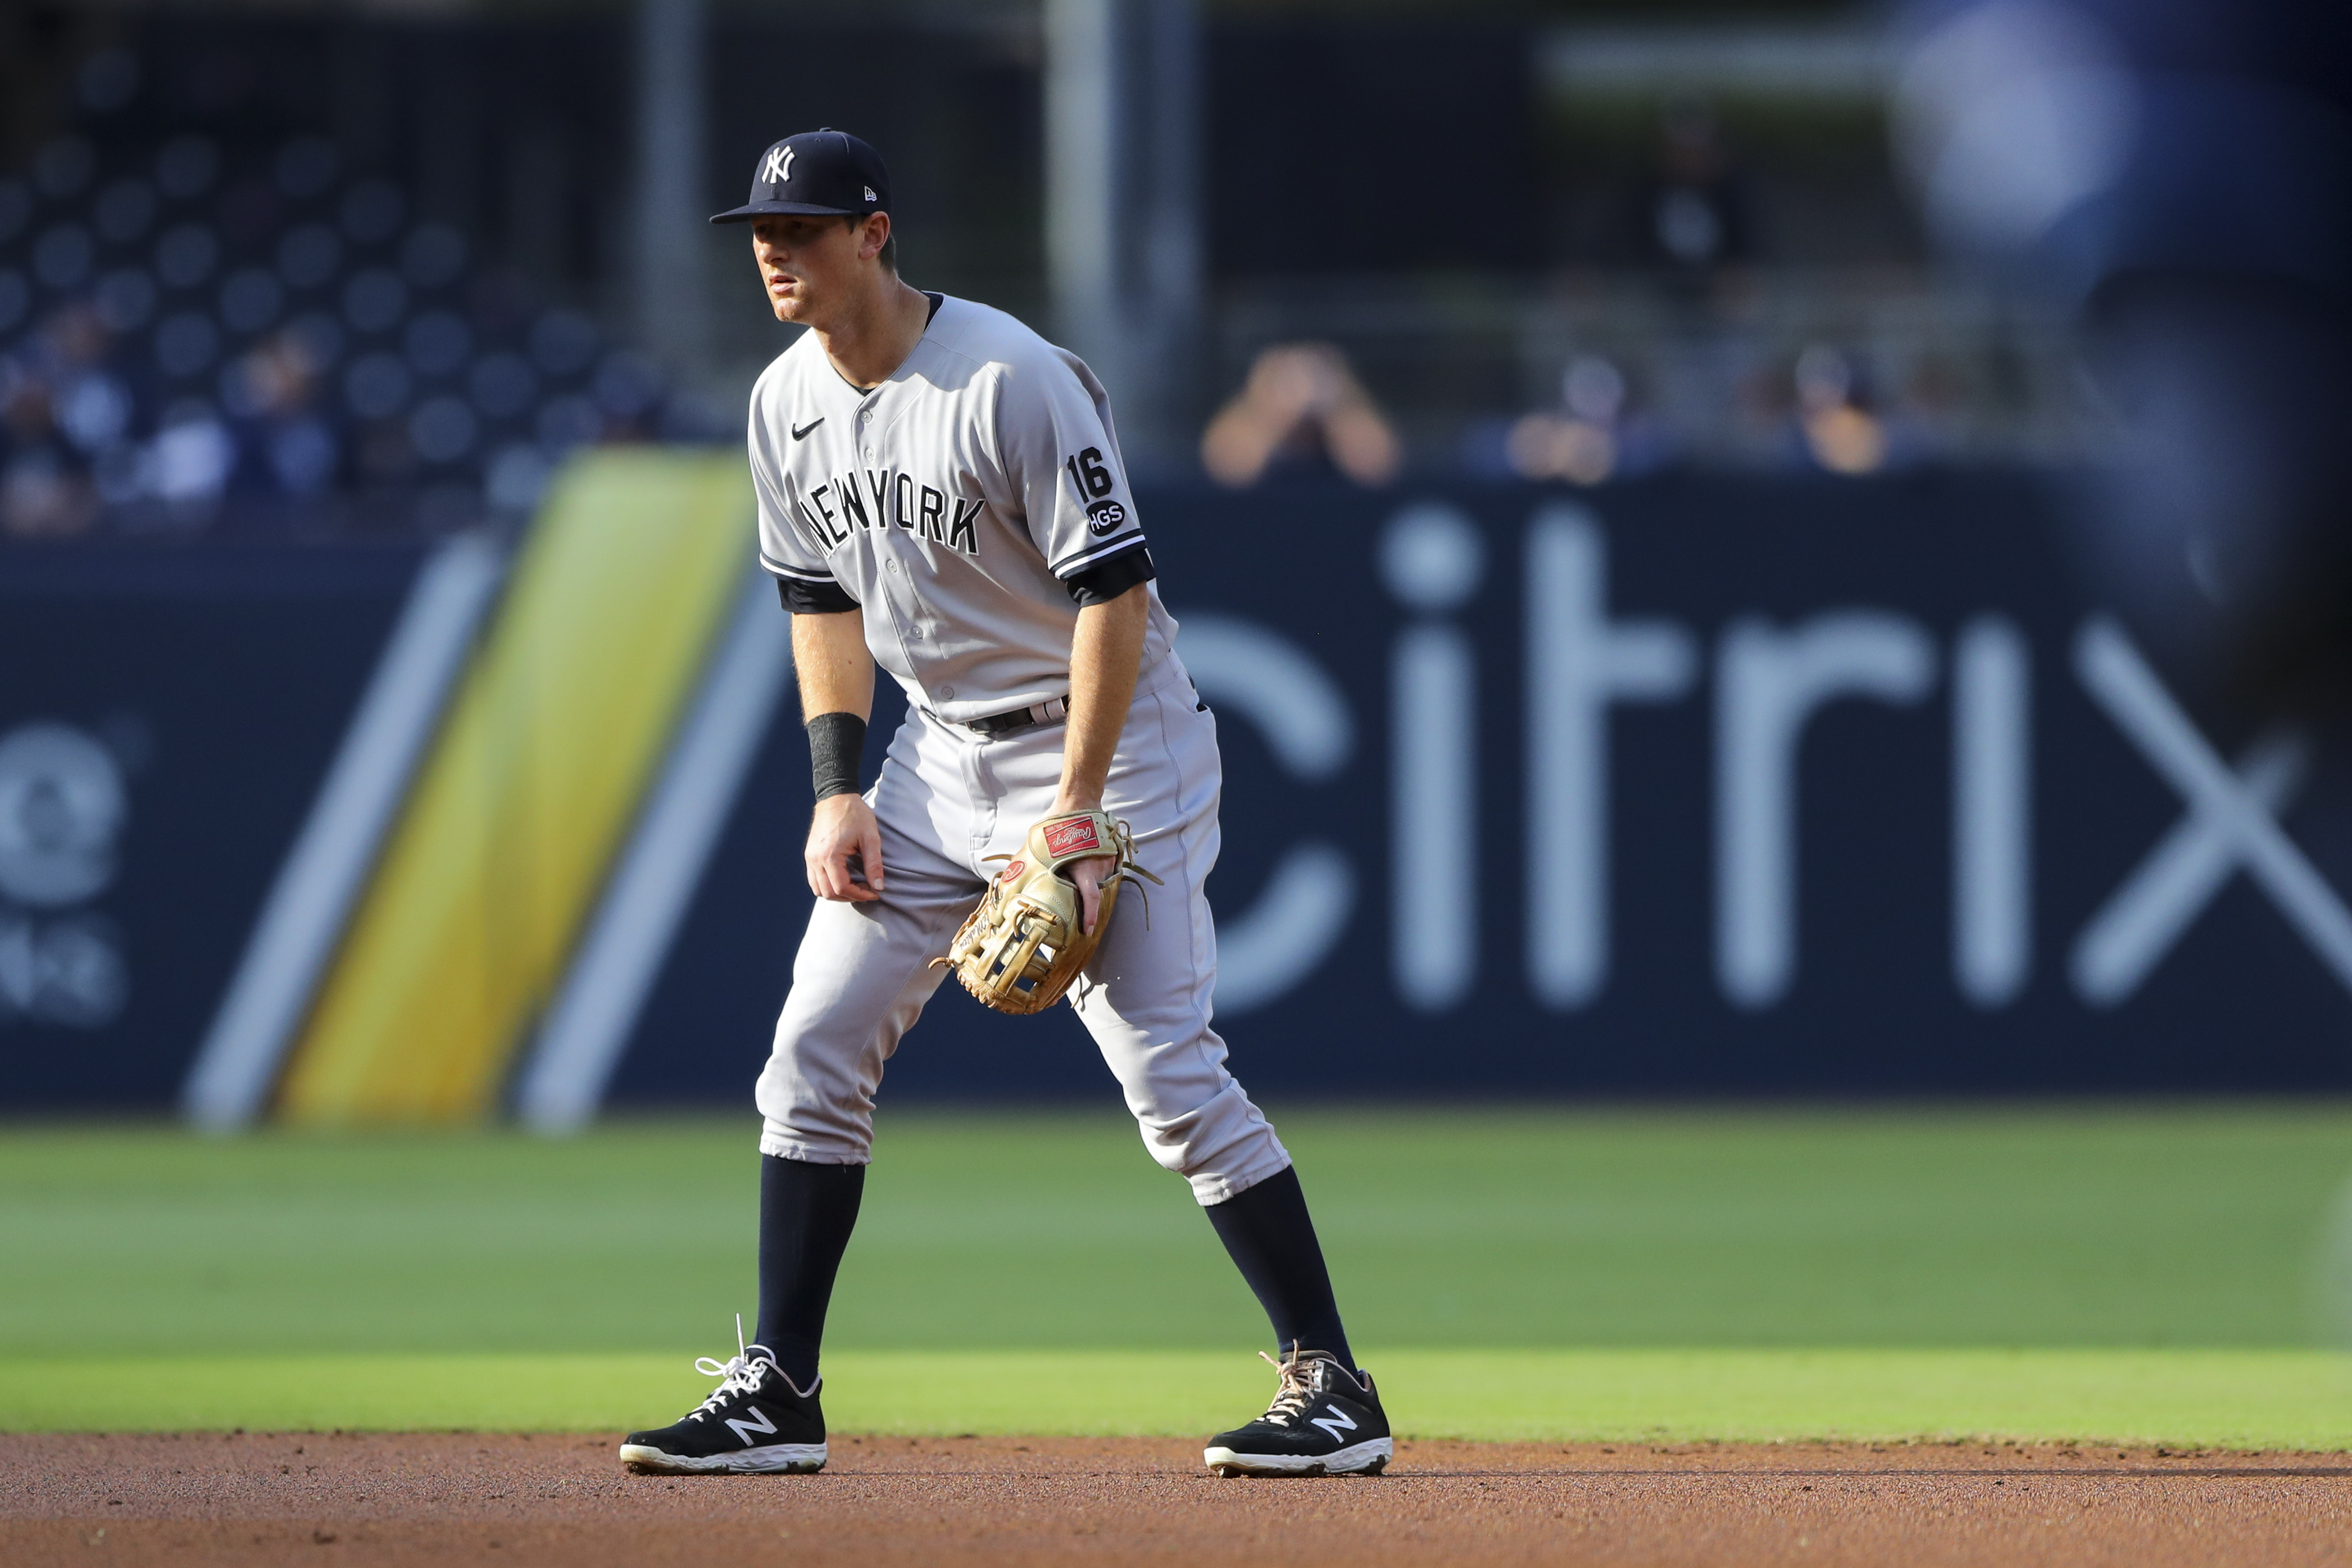 DJ LeMahieu #26 of the New York Yankees stands ready at second base during Game 5 of the ALDS between the New York Yankees and the Tampa Bay Rays at Petco Park on Friday, October 9, 2020 in San Diego, California.